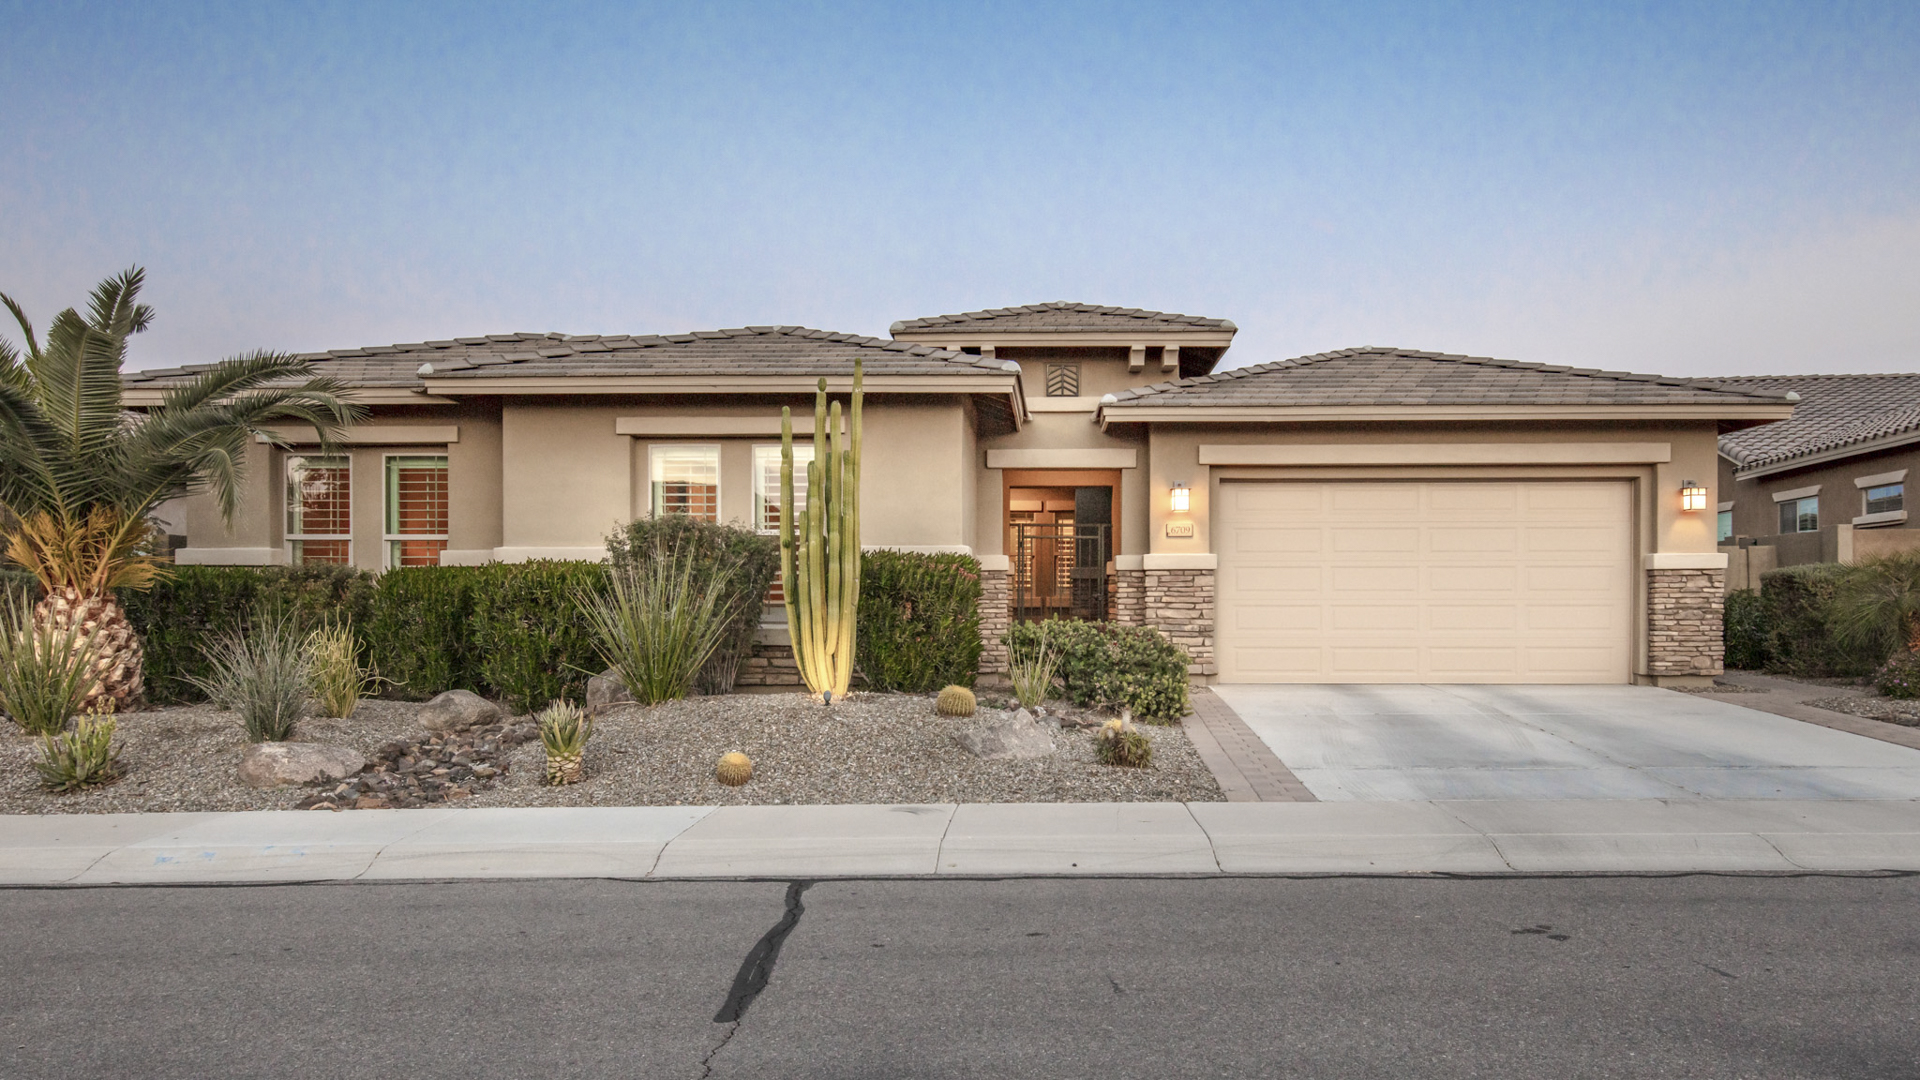 FEATURED LISTING - 6709 S Lyon Drive, Gilbert, AZ 85298 - Seville | Amy Jones Group